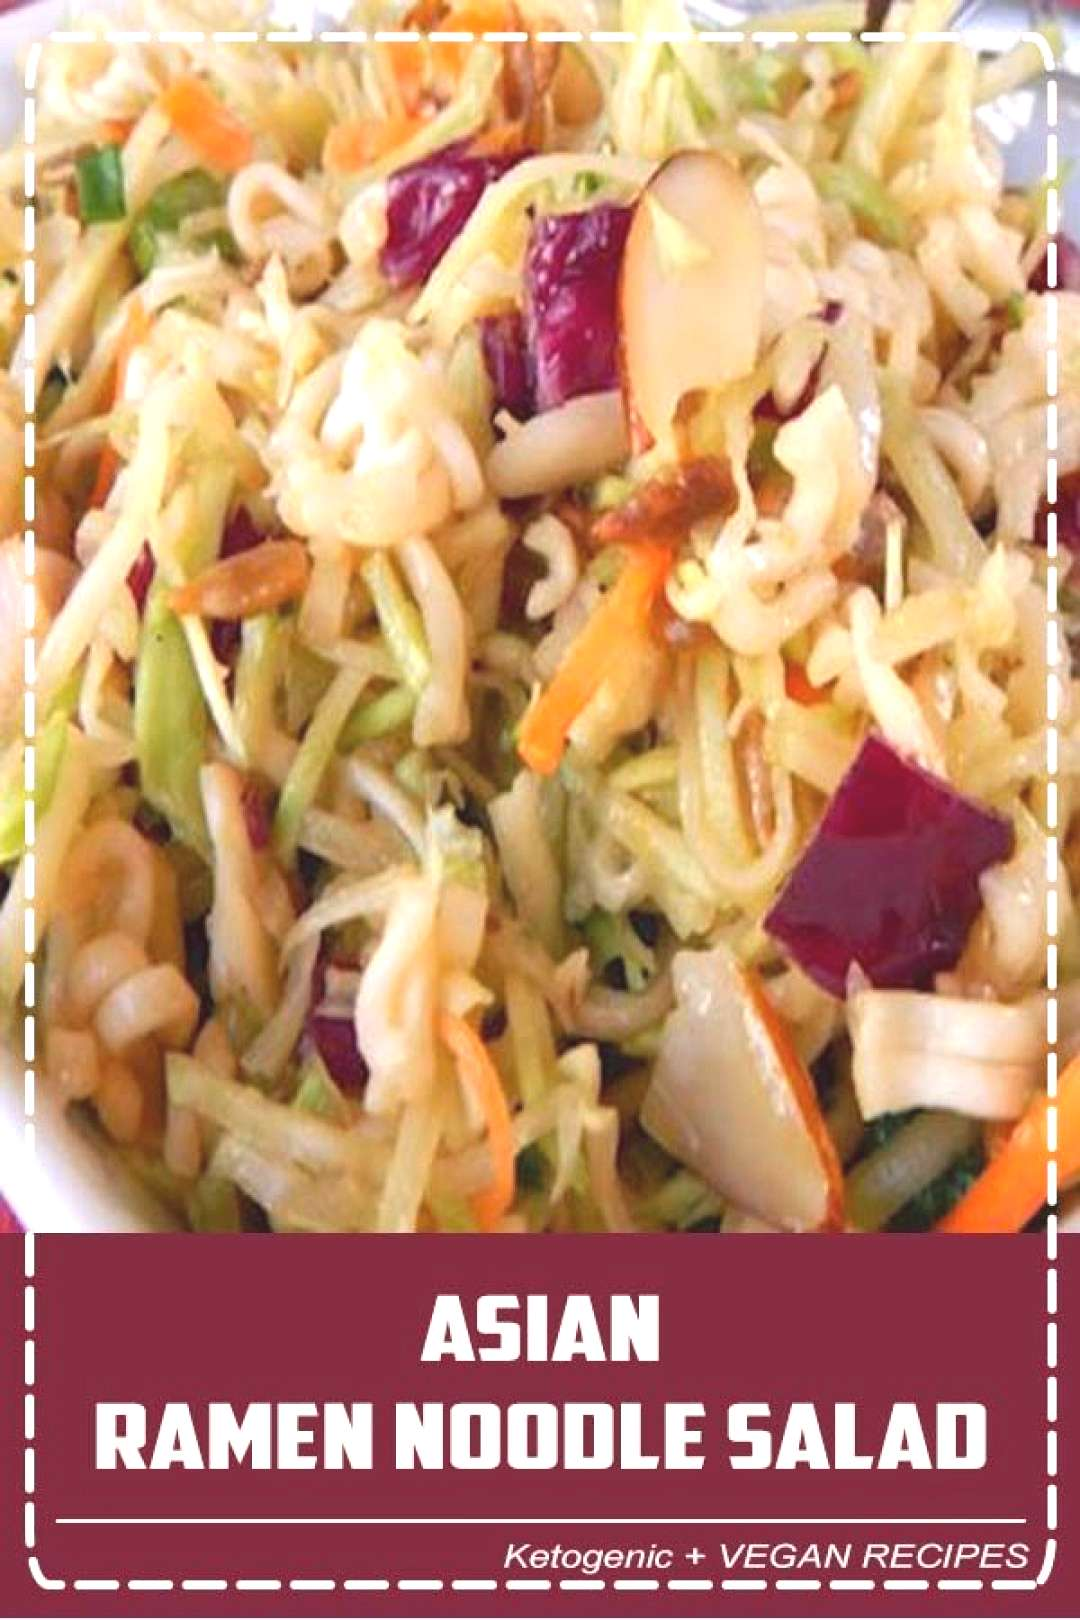 This Asian Ramen Noodle salad takes 20 minutes to whip together and can be made the night before. E